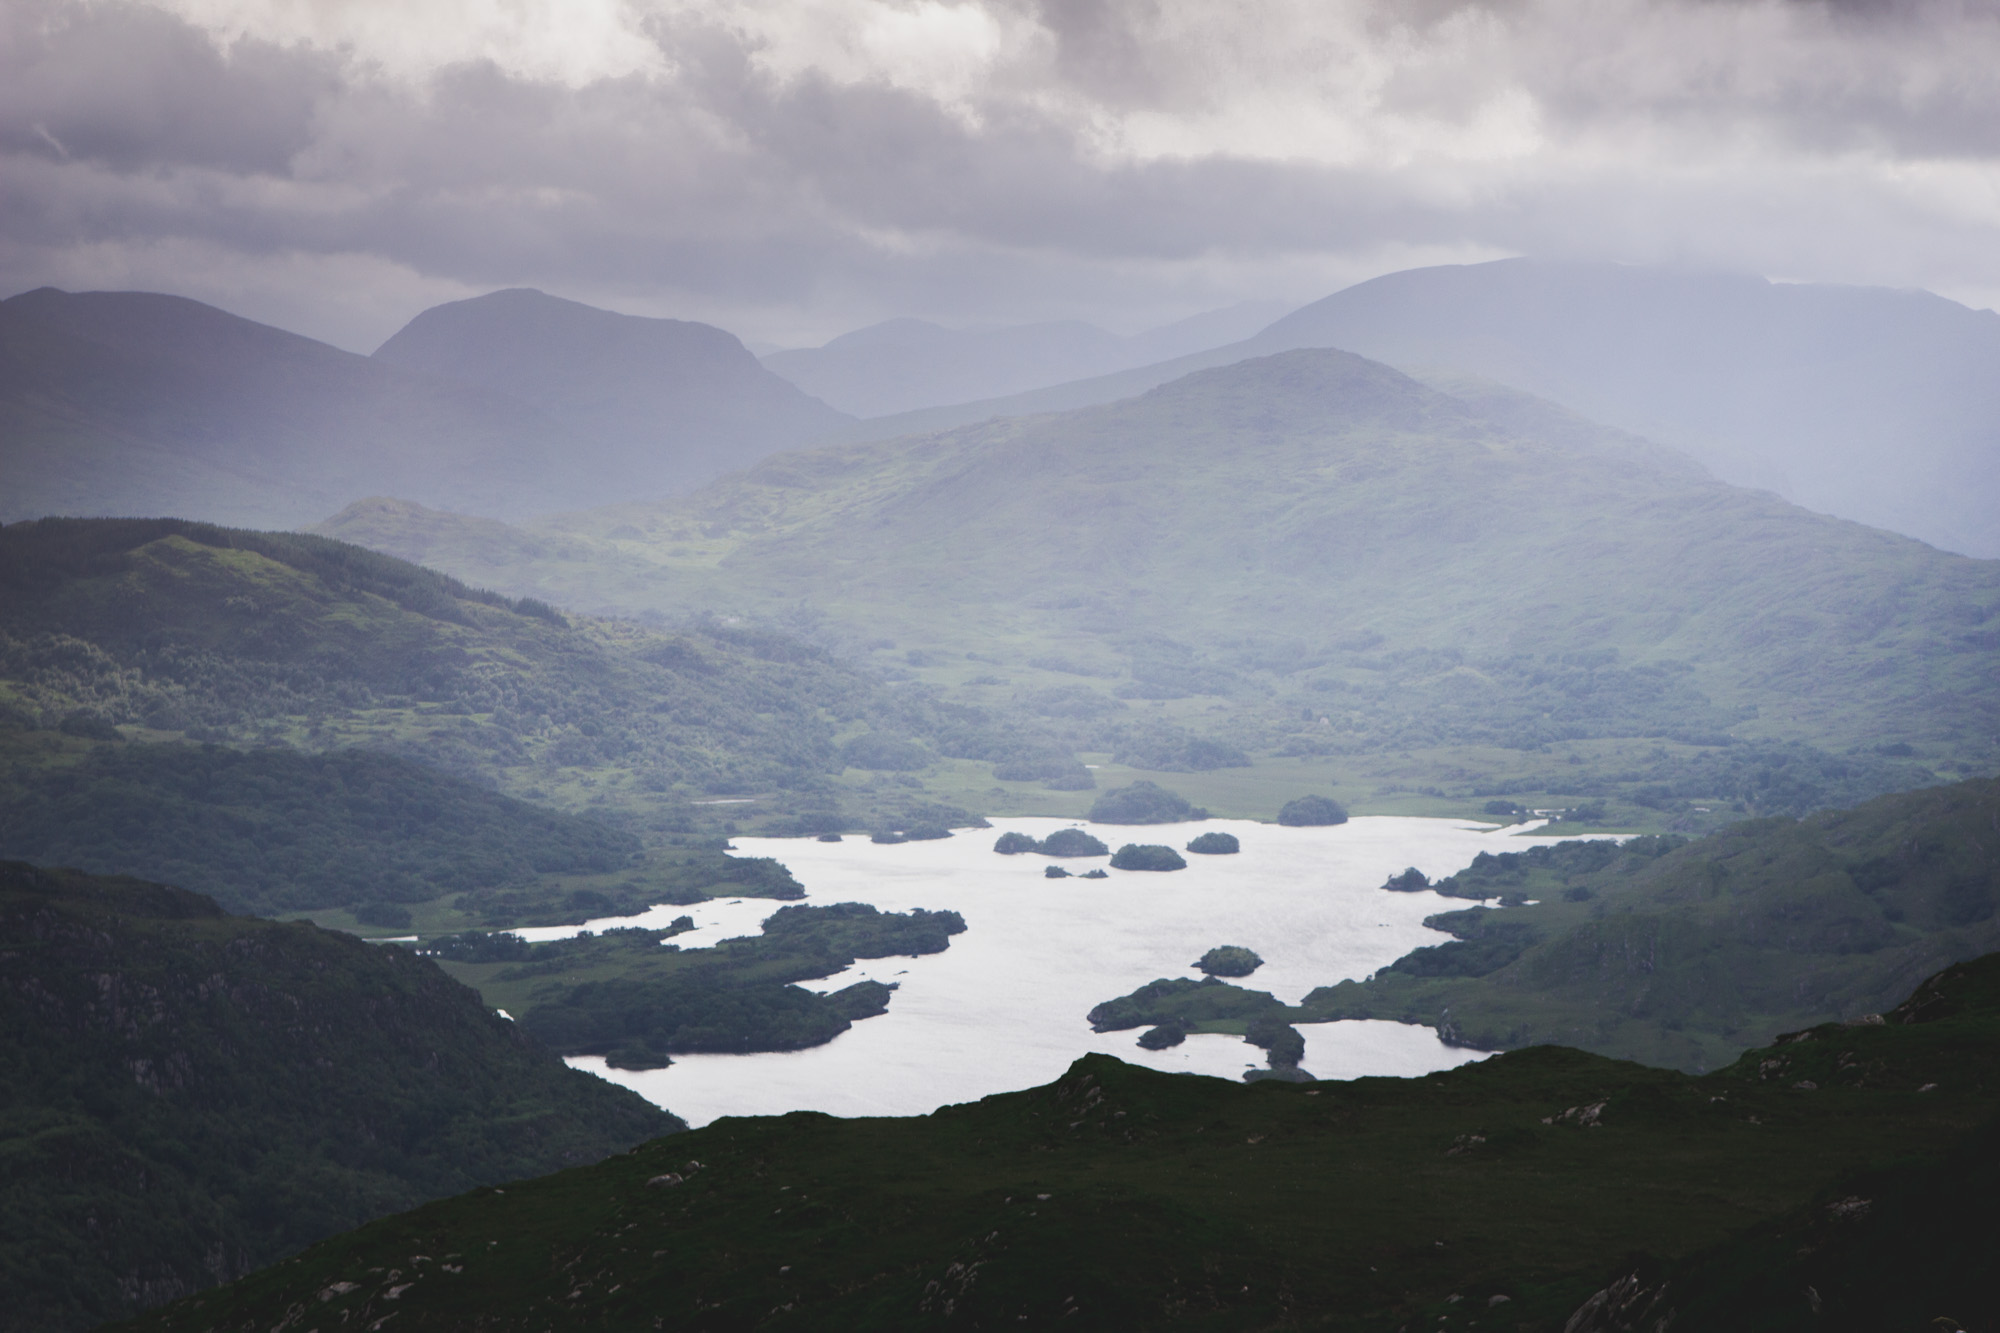 View of a lake, mountains, hills, and grass from the top of Torc Mountain in Killarney National Park in Ireland